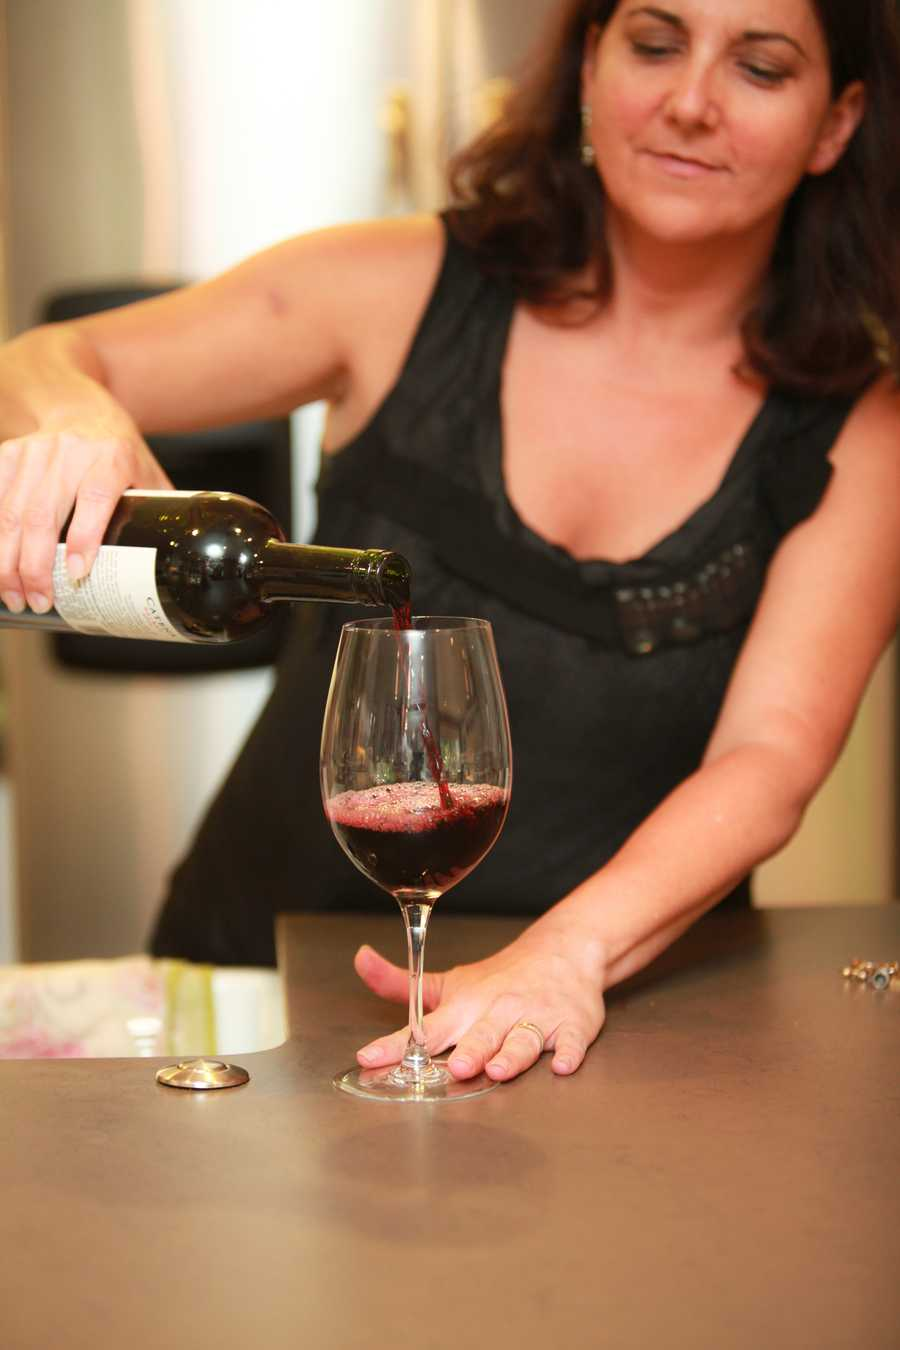 What: Friday UnCorked: Grape to Glass with Susan BrownWhere: Sacramento Natural Foods Co-opWhen: Fri 5:30pm-7pmClick here for more information on this event.